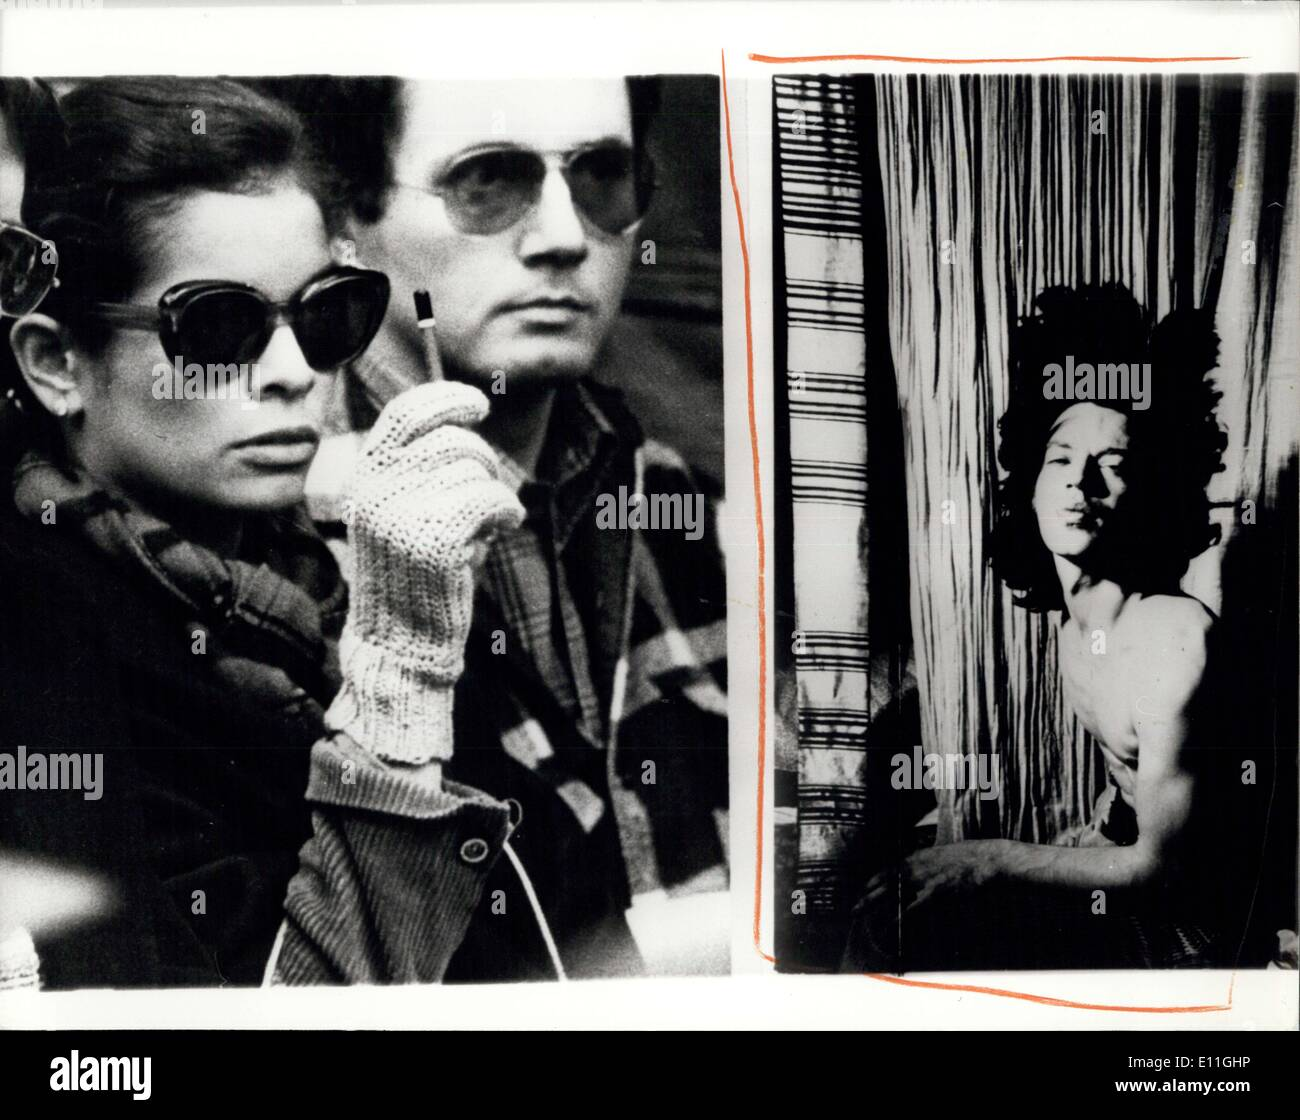 Nov. 21, 1977 - Biance Jagger buys a photograph of her husband at Sotheby's sale.: Bianca Jagger attended Sotheby's auction rooms today to buy a photograph of her husband Mick Jagger which was among a collection of Photographs taken by Cecil Beaton in the sale today. The photograph of Mick Jagger was taken in 1970 during the filming of ''Performance''. Photo shows (left) bianca Jagger bidding for the photograph during the sale today, she paid ?200 for it. (right) The photograph by Cecil beaton of Mick jagger taken in 1970. - Stock Image